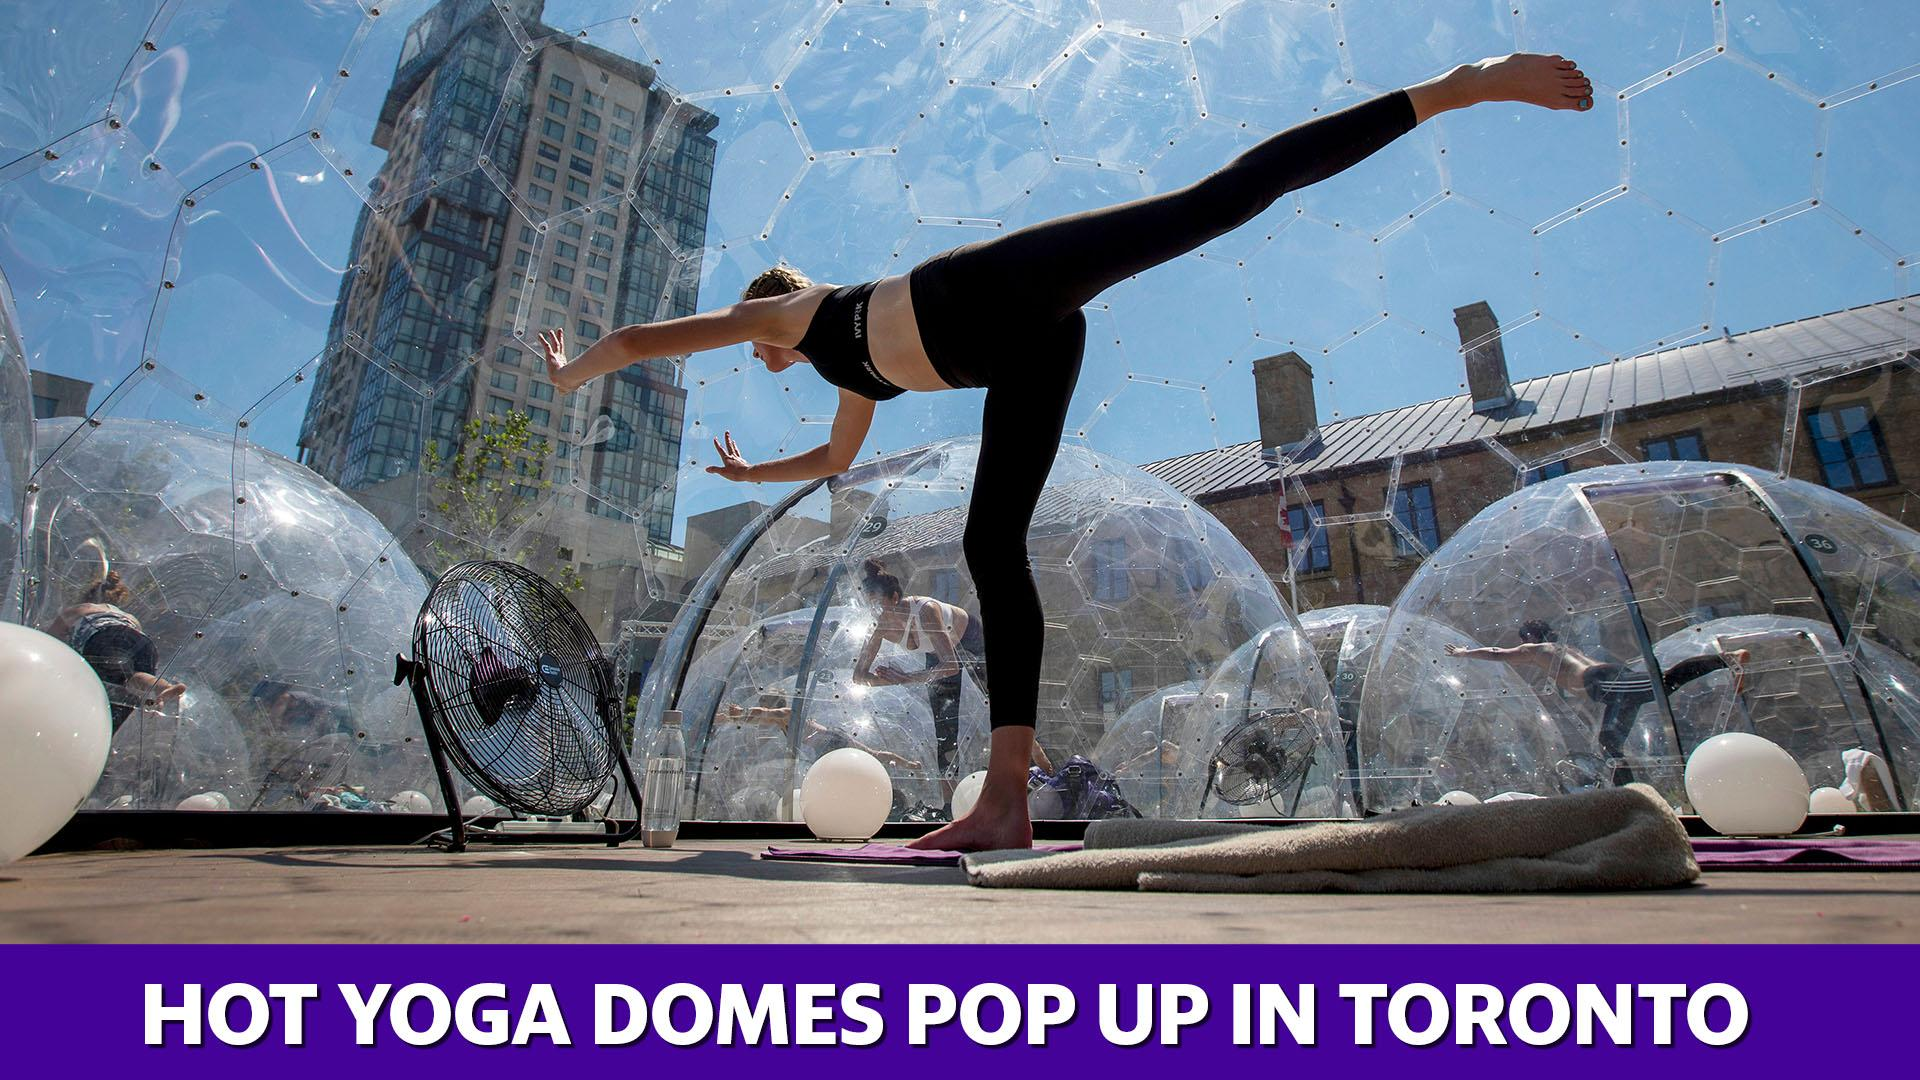 Hot Yoga Domes Pop Up In Toronto Amid Pandemic Video